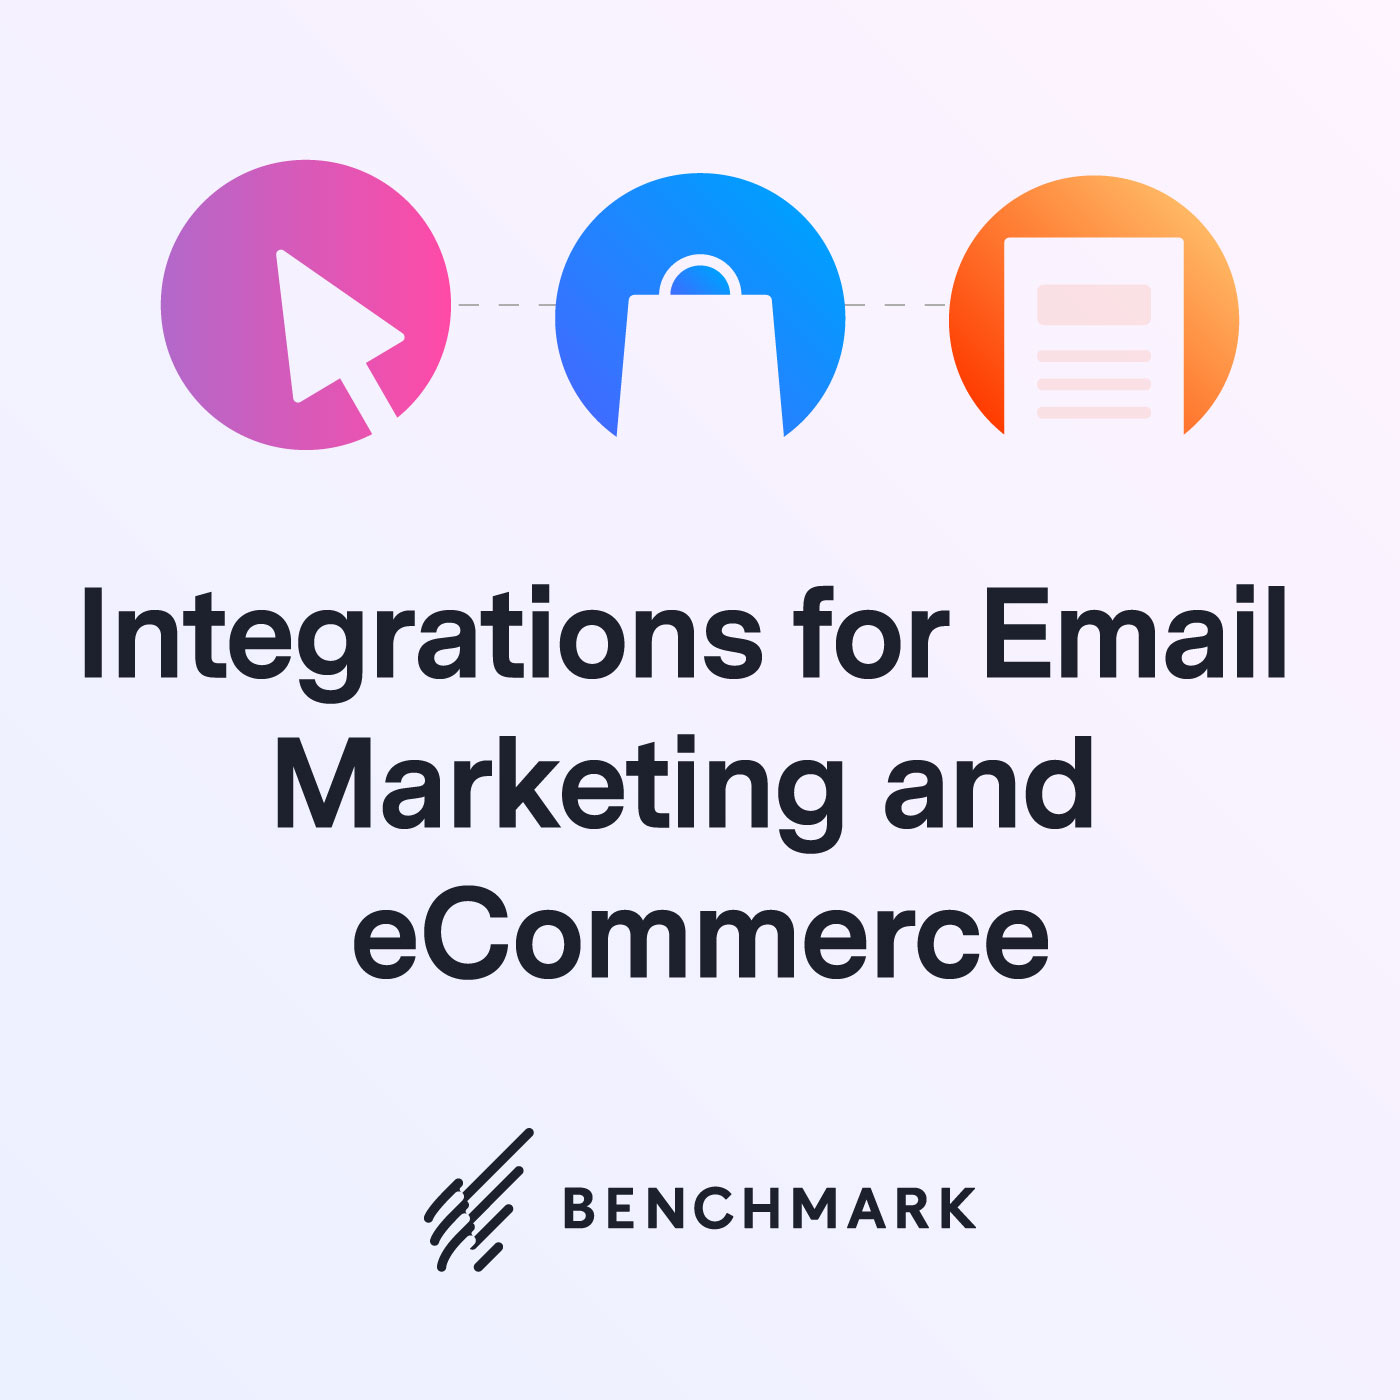 Top Integrations for Email Marketing and eCommerce